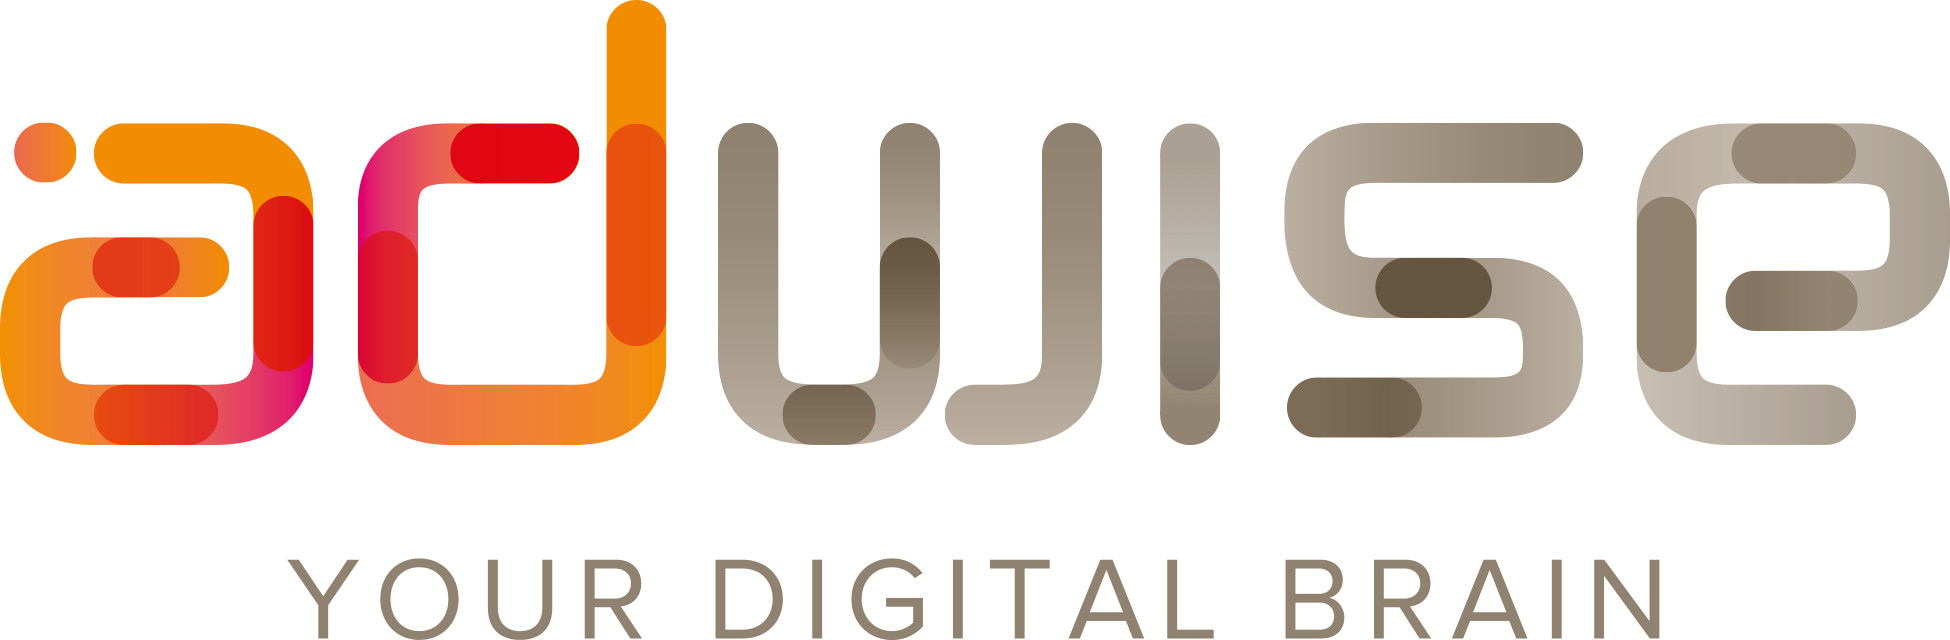 Copernica partner: Adwise - Your Digital Brain